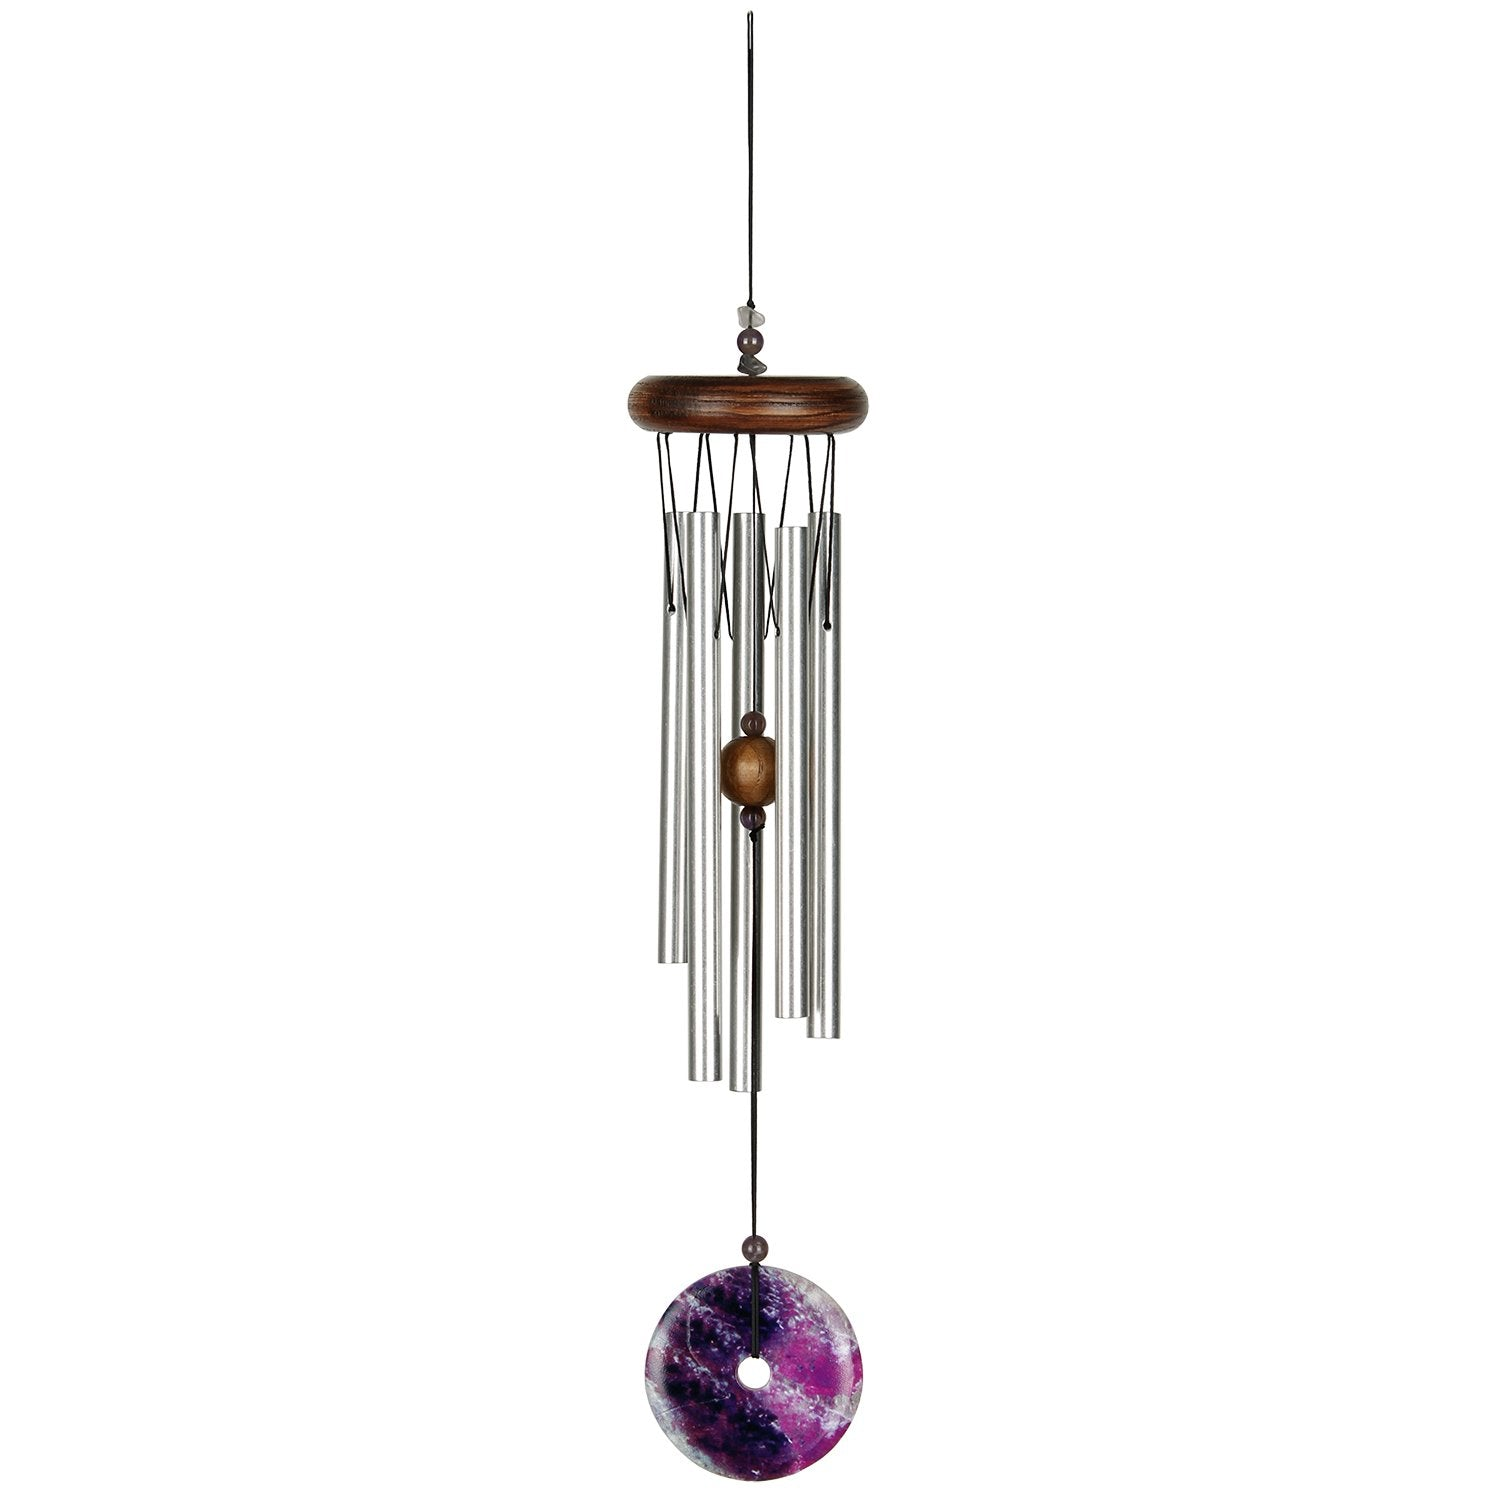 Woodstock Amethyst Chime - Petite full product image